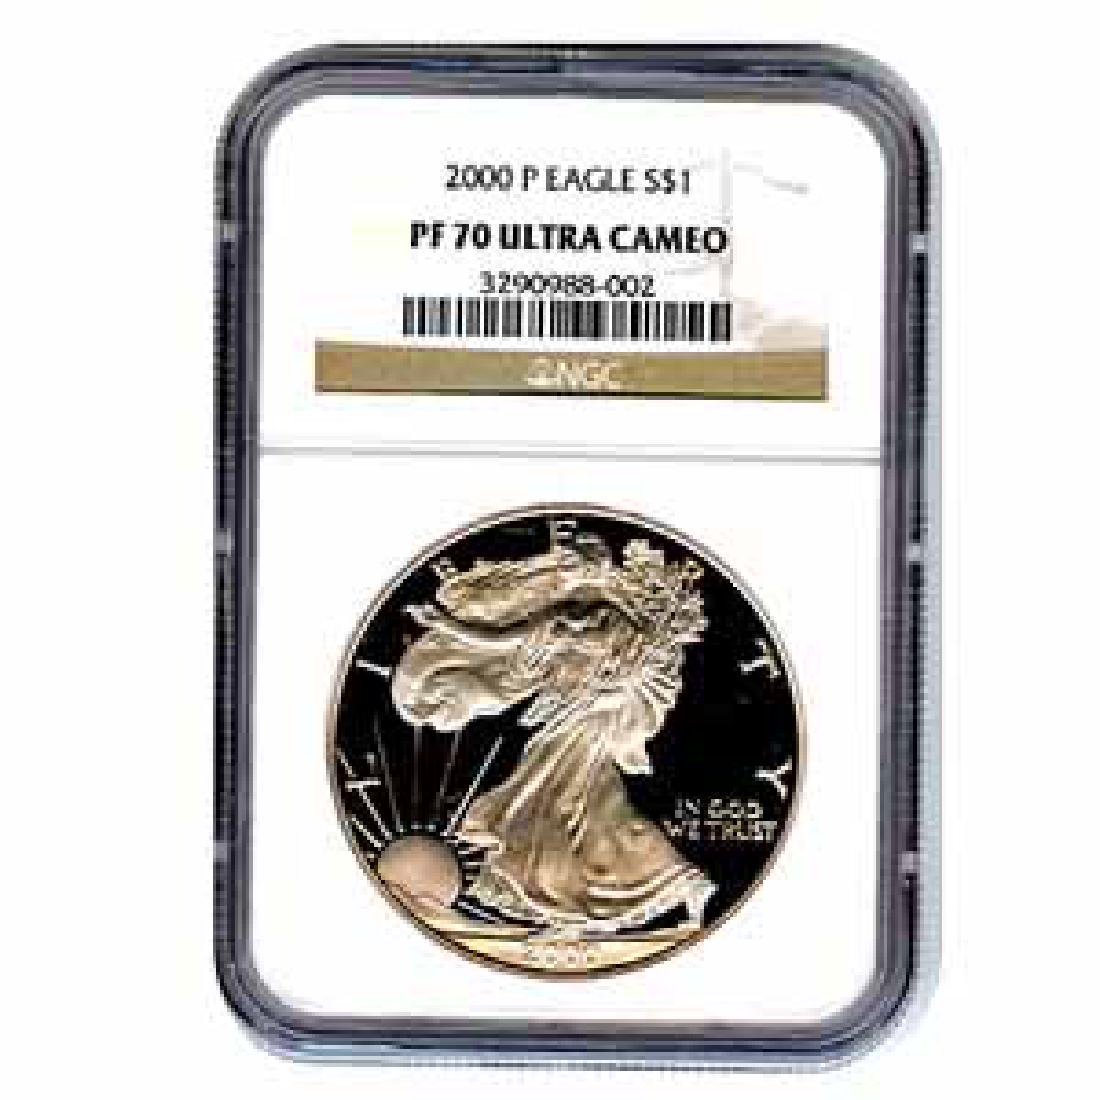 Certified Proof Silver Eagle 2000 PF70 NGC